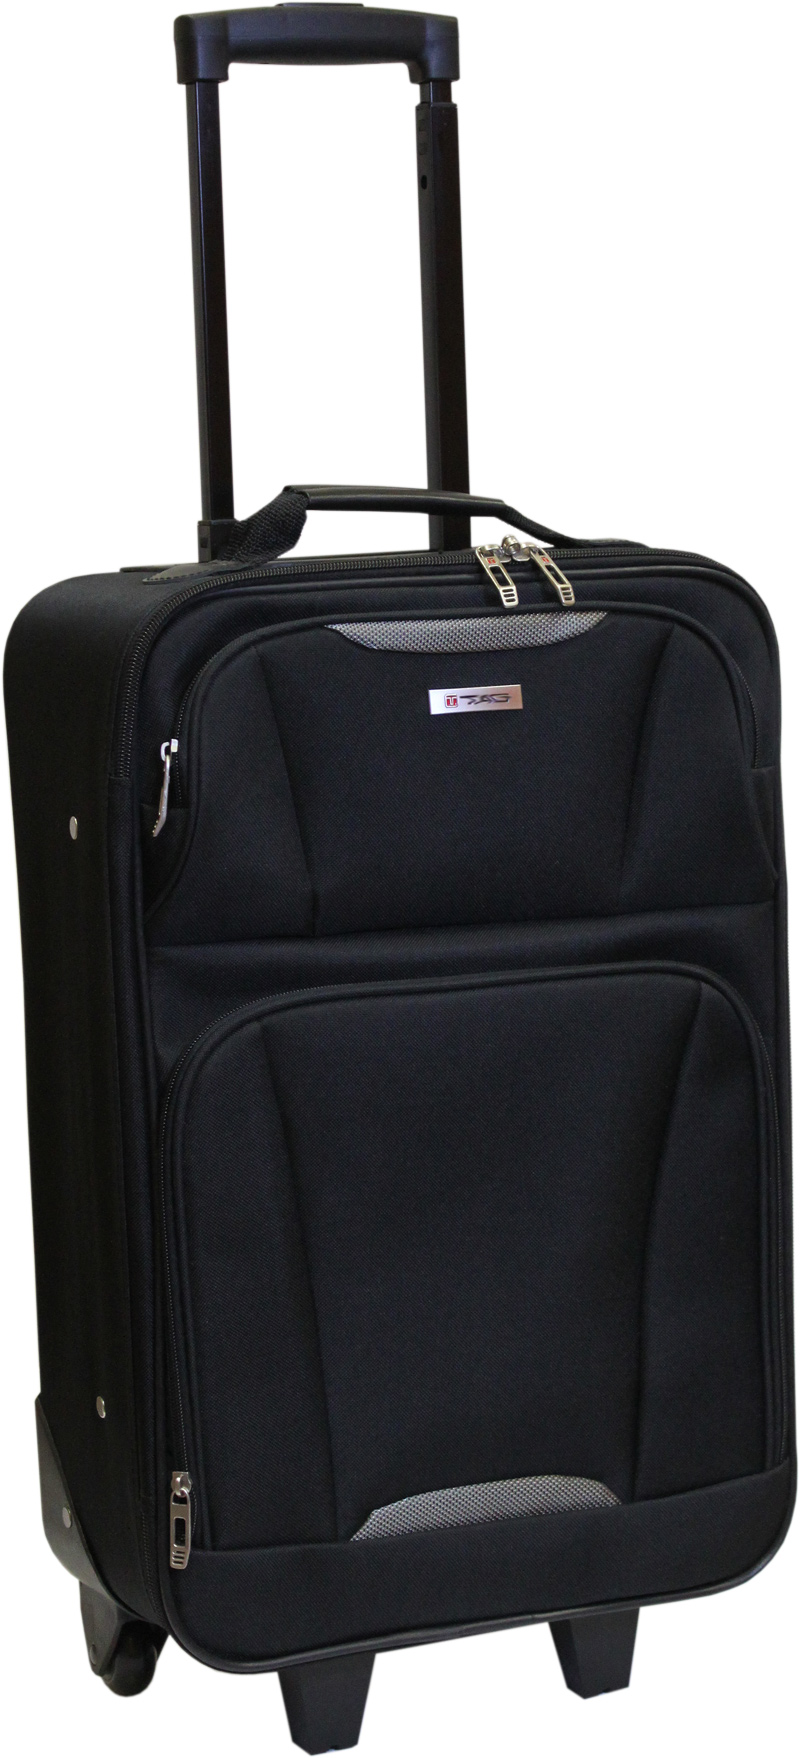 trolley handgep ck reise koffer schwarz nylon 30l tag ebay. Black Bedroom Furniture Sets. Home Design Ideas